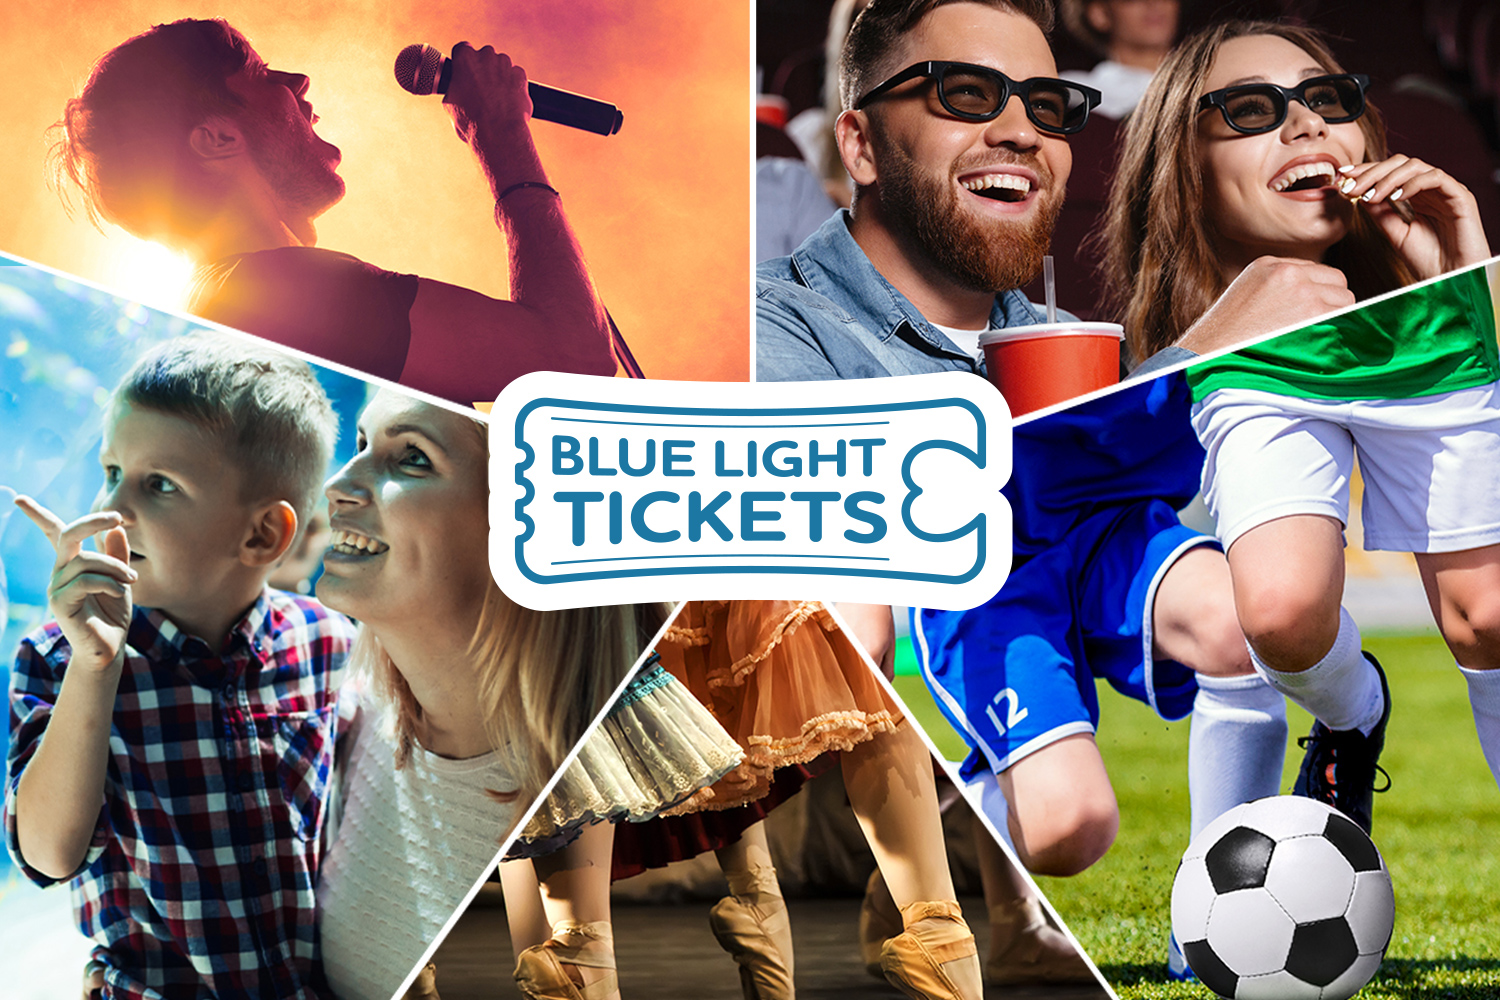 More exclusive offers from Blue Light Tickets!